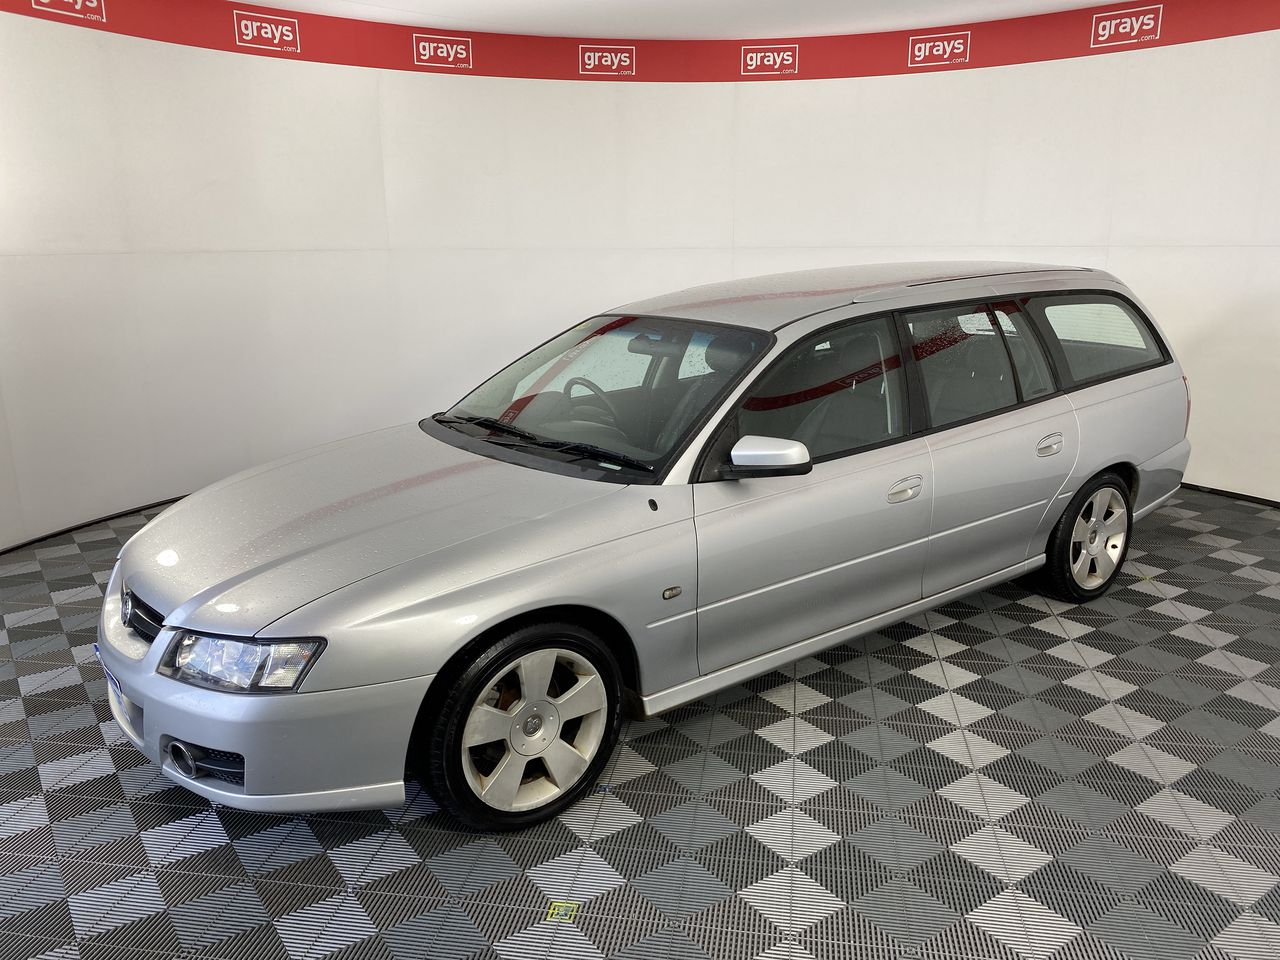 2006 Holden Commodore SVZ VZ Automatic Wagon